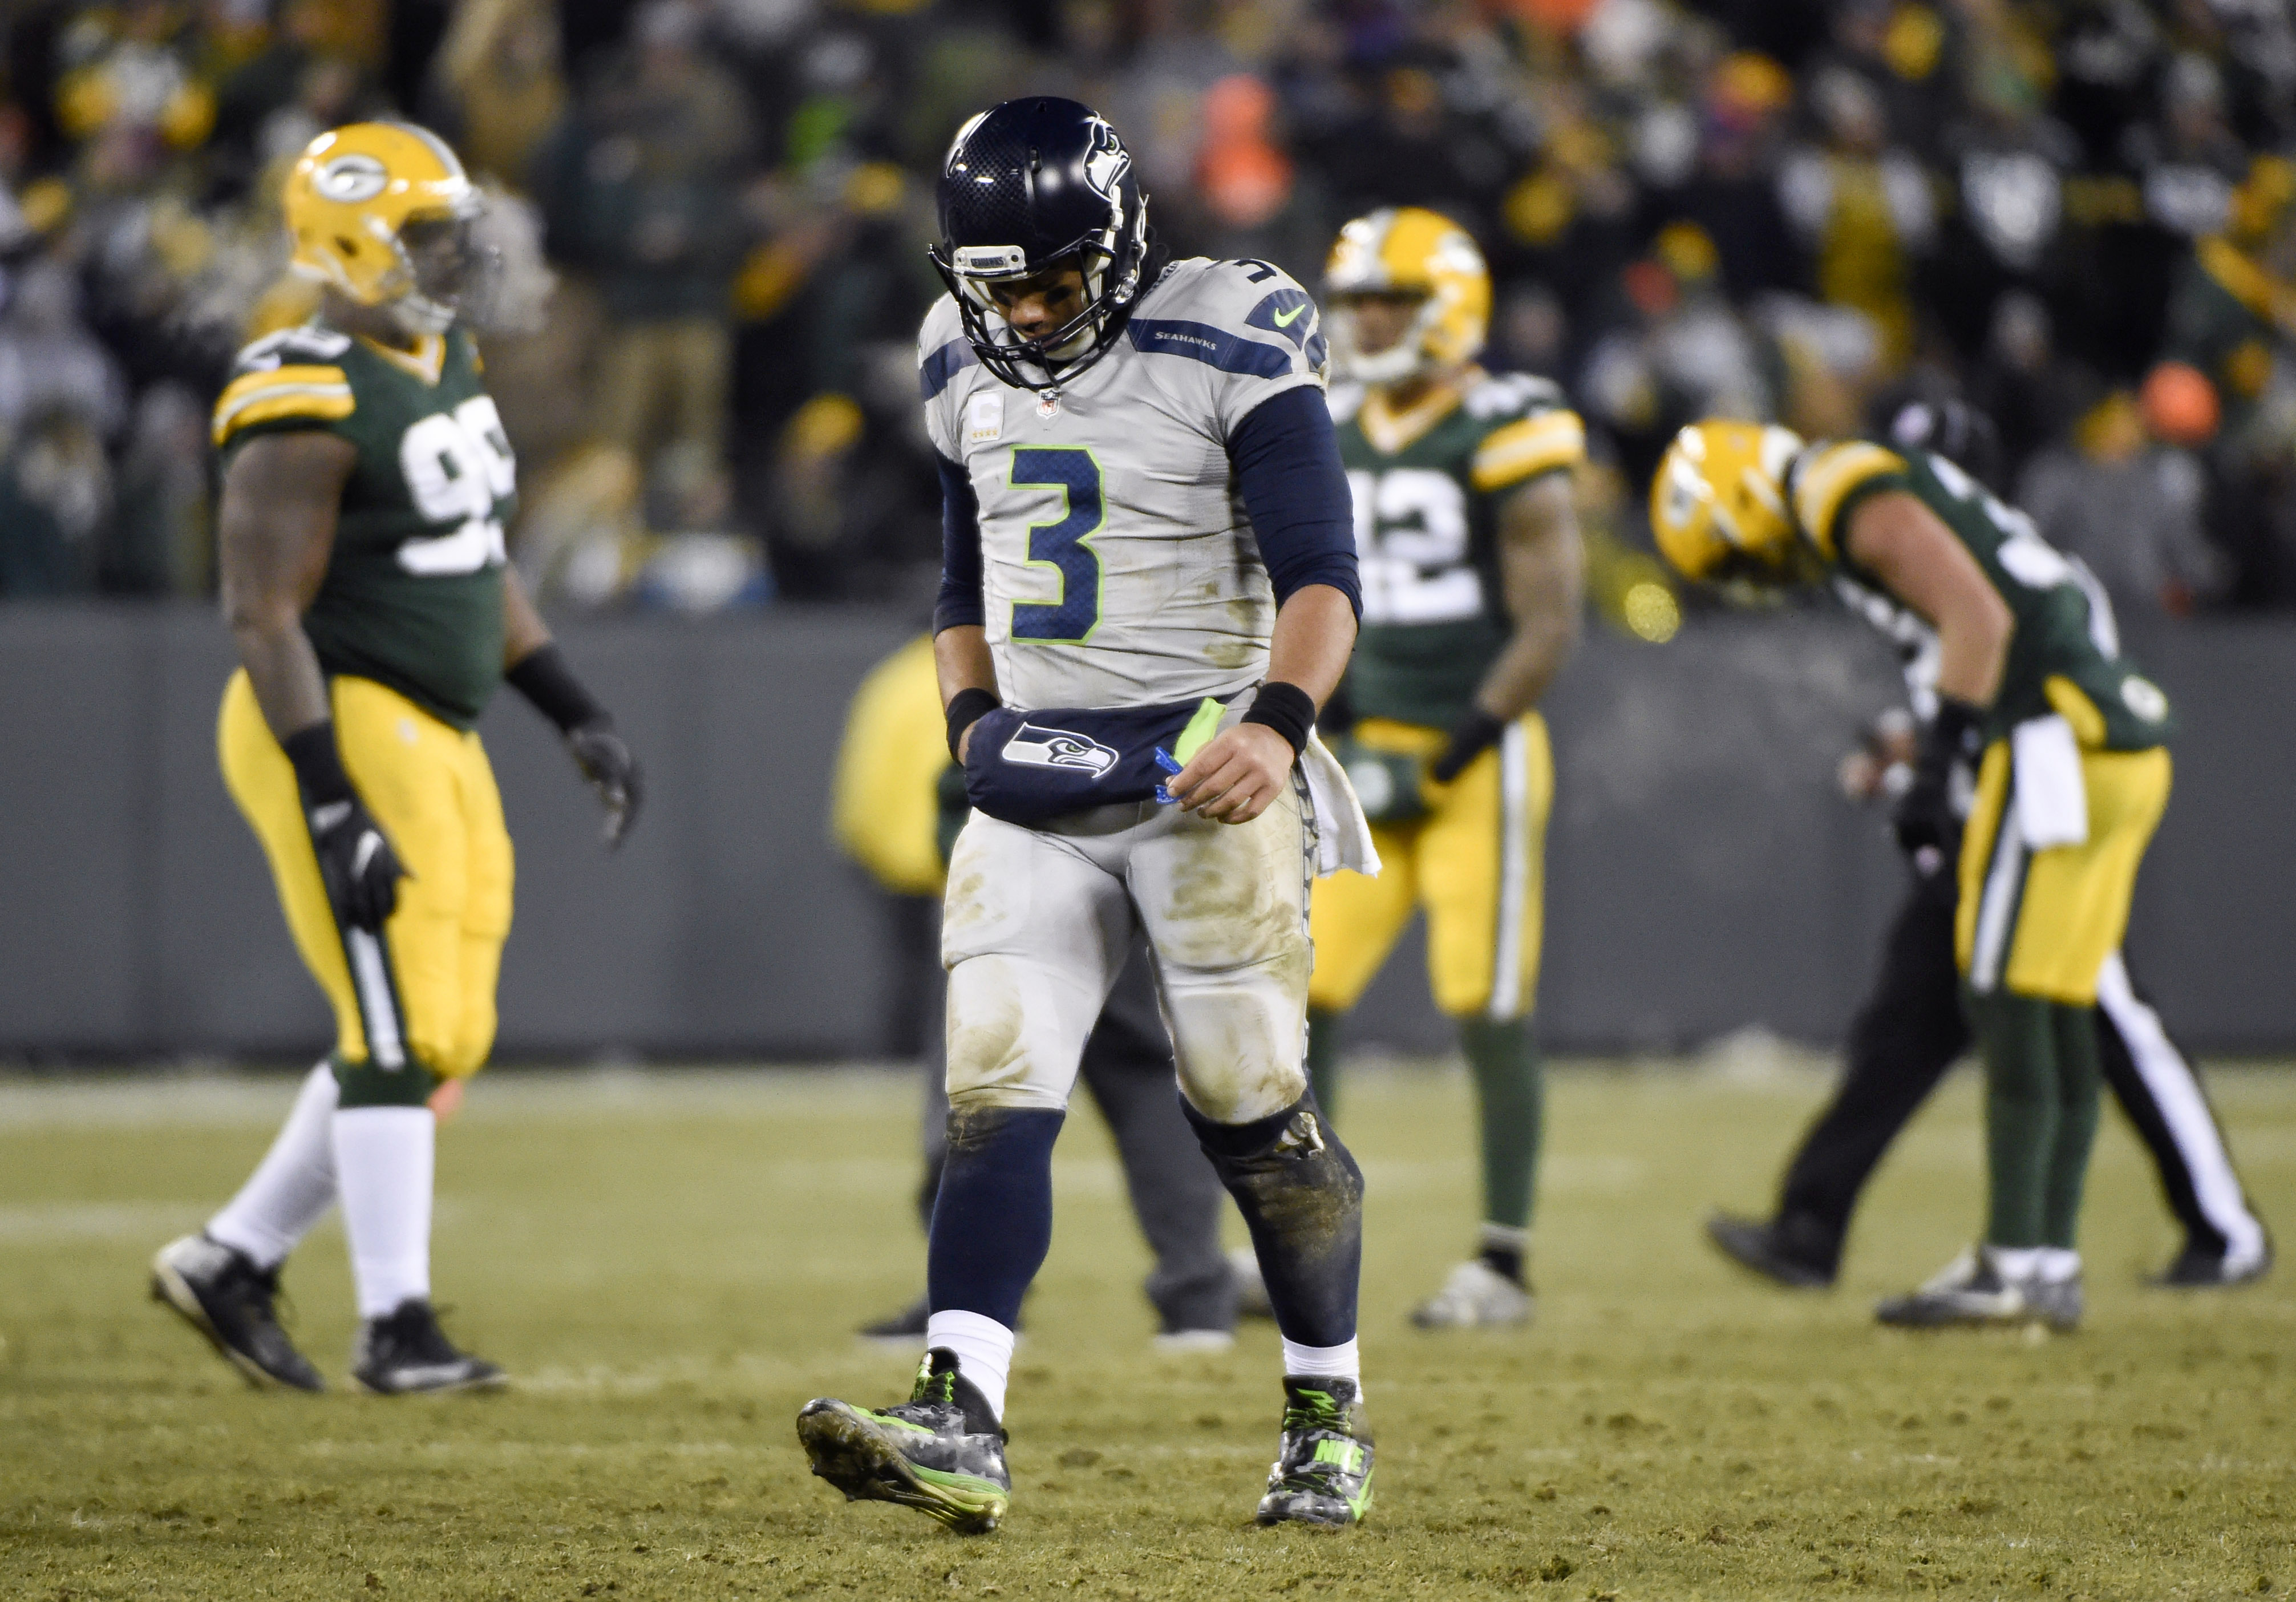 9742651-nfl-seattle-seahawks-at-green-bay-packers